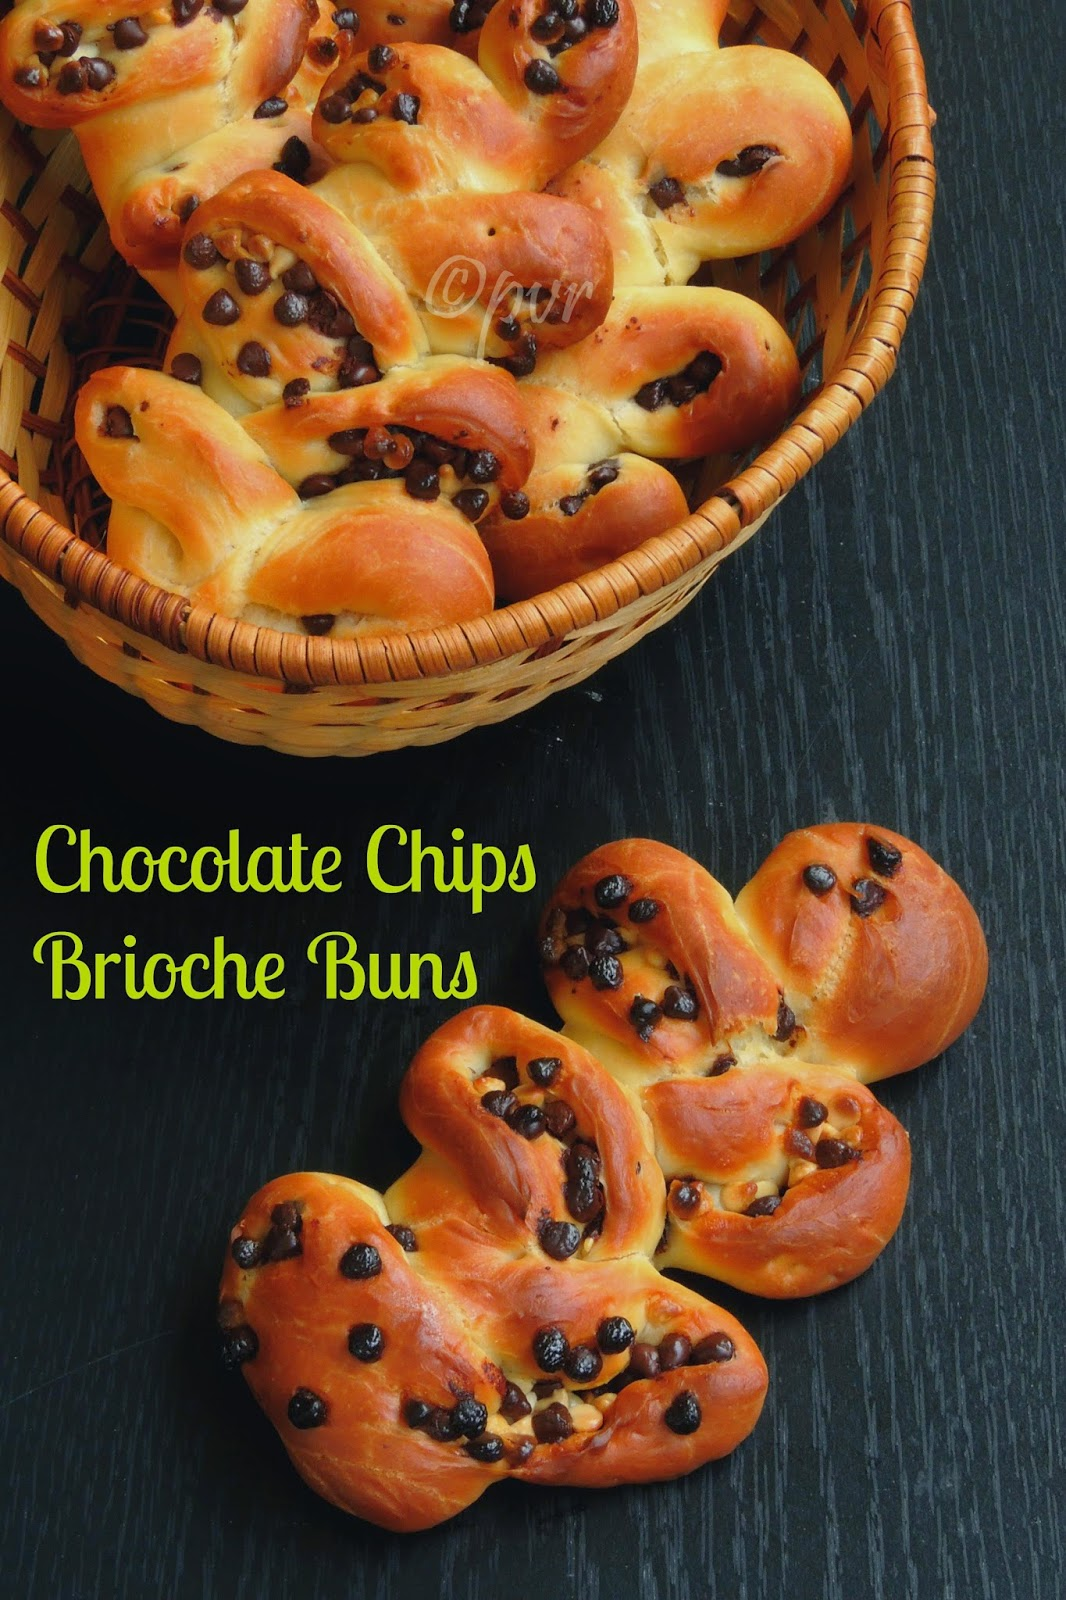 Chocolate Chips Brioche Buns